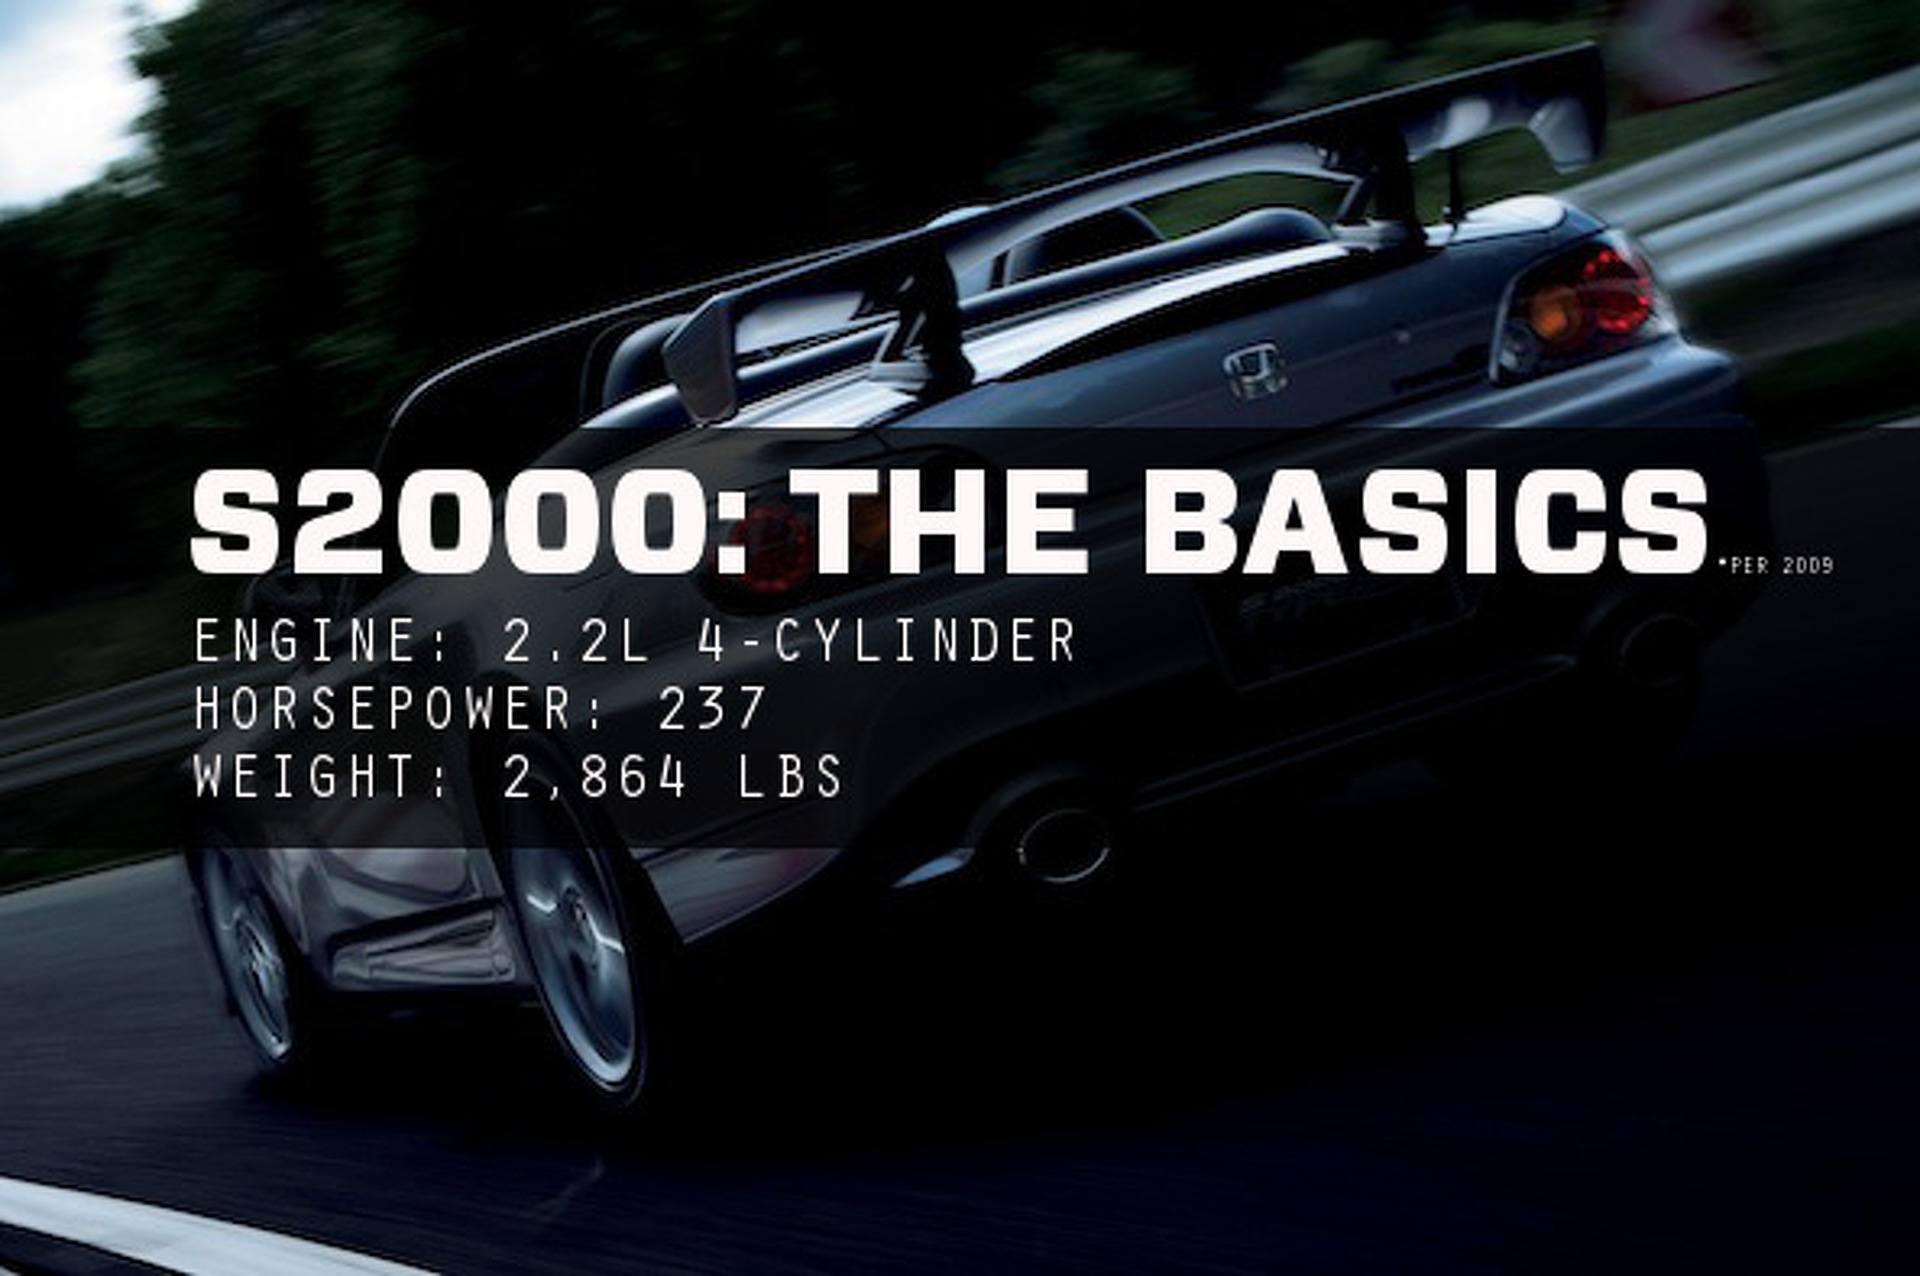 Honda S2000 vs S660: How Do They Stack Up?